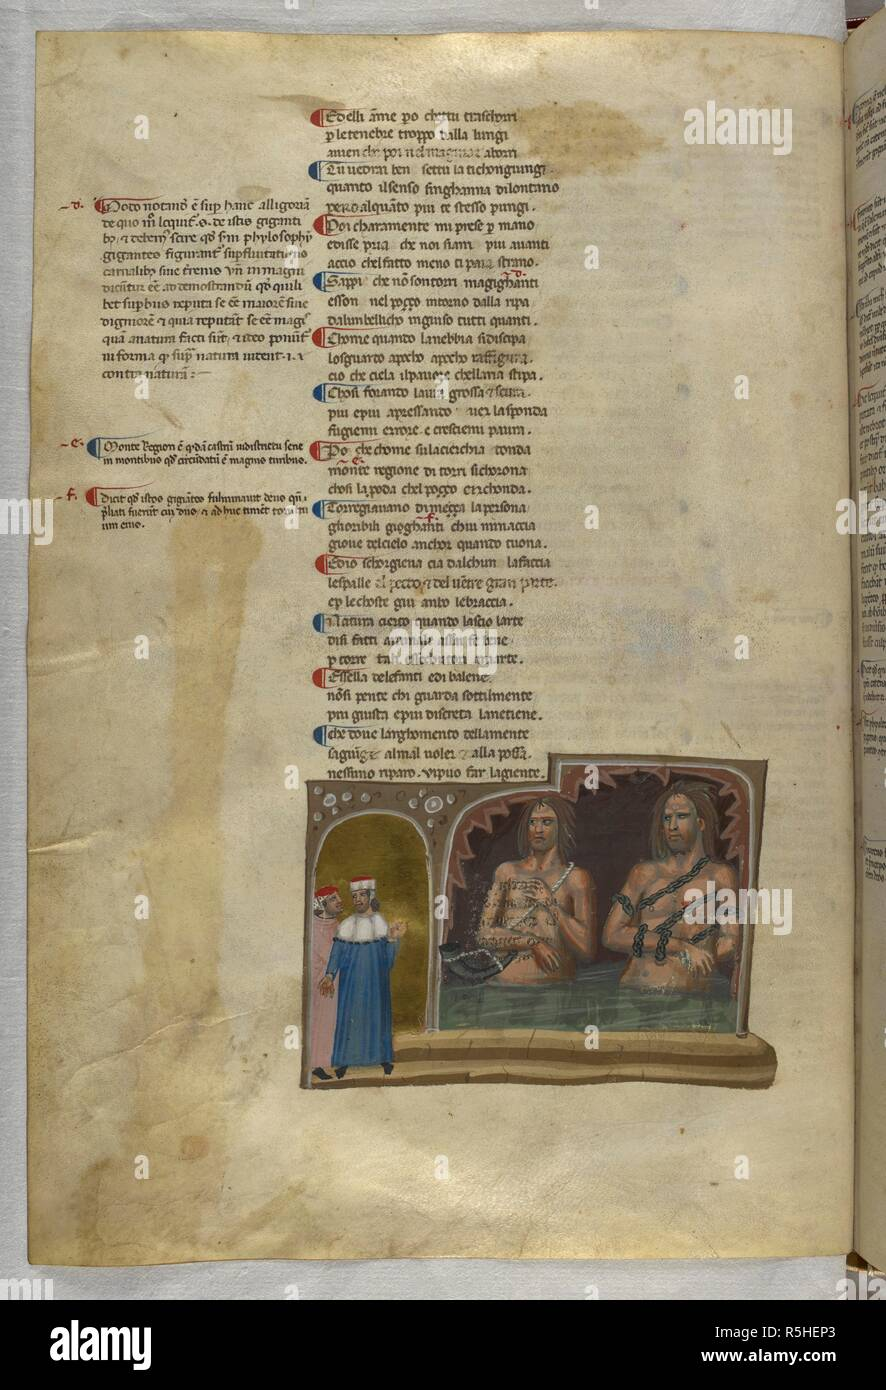 Inferno: The giants Nimrod and Ephialtes. Dante Alighieri, Divina Commedia ( The Divine Comedy ), with a commentary in Latin. 1st half of the 14th century. Source: Egerton 943, f.55v. Language: Italian, Latin. - Stock Image